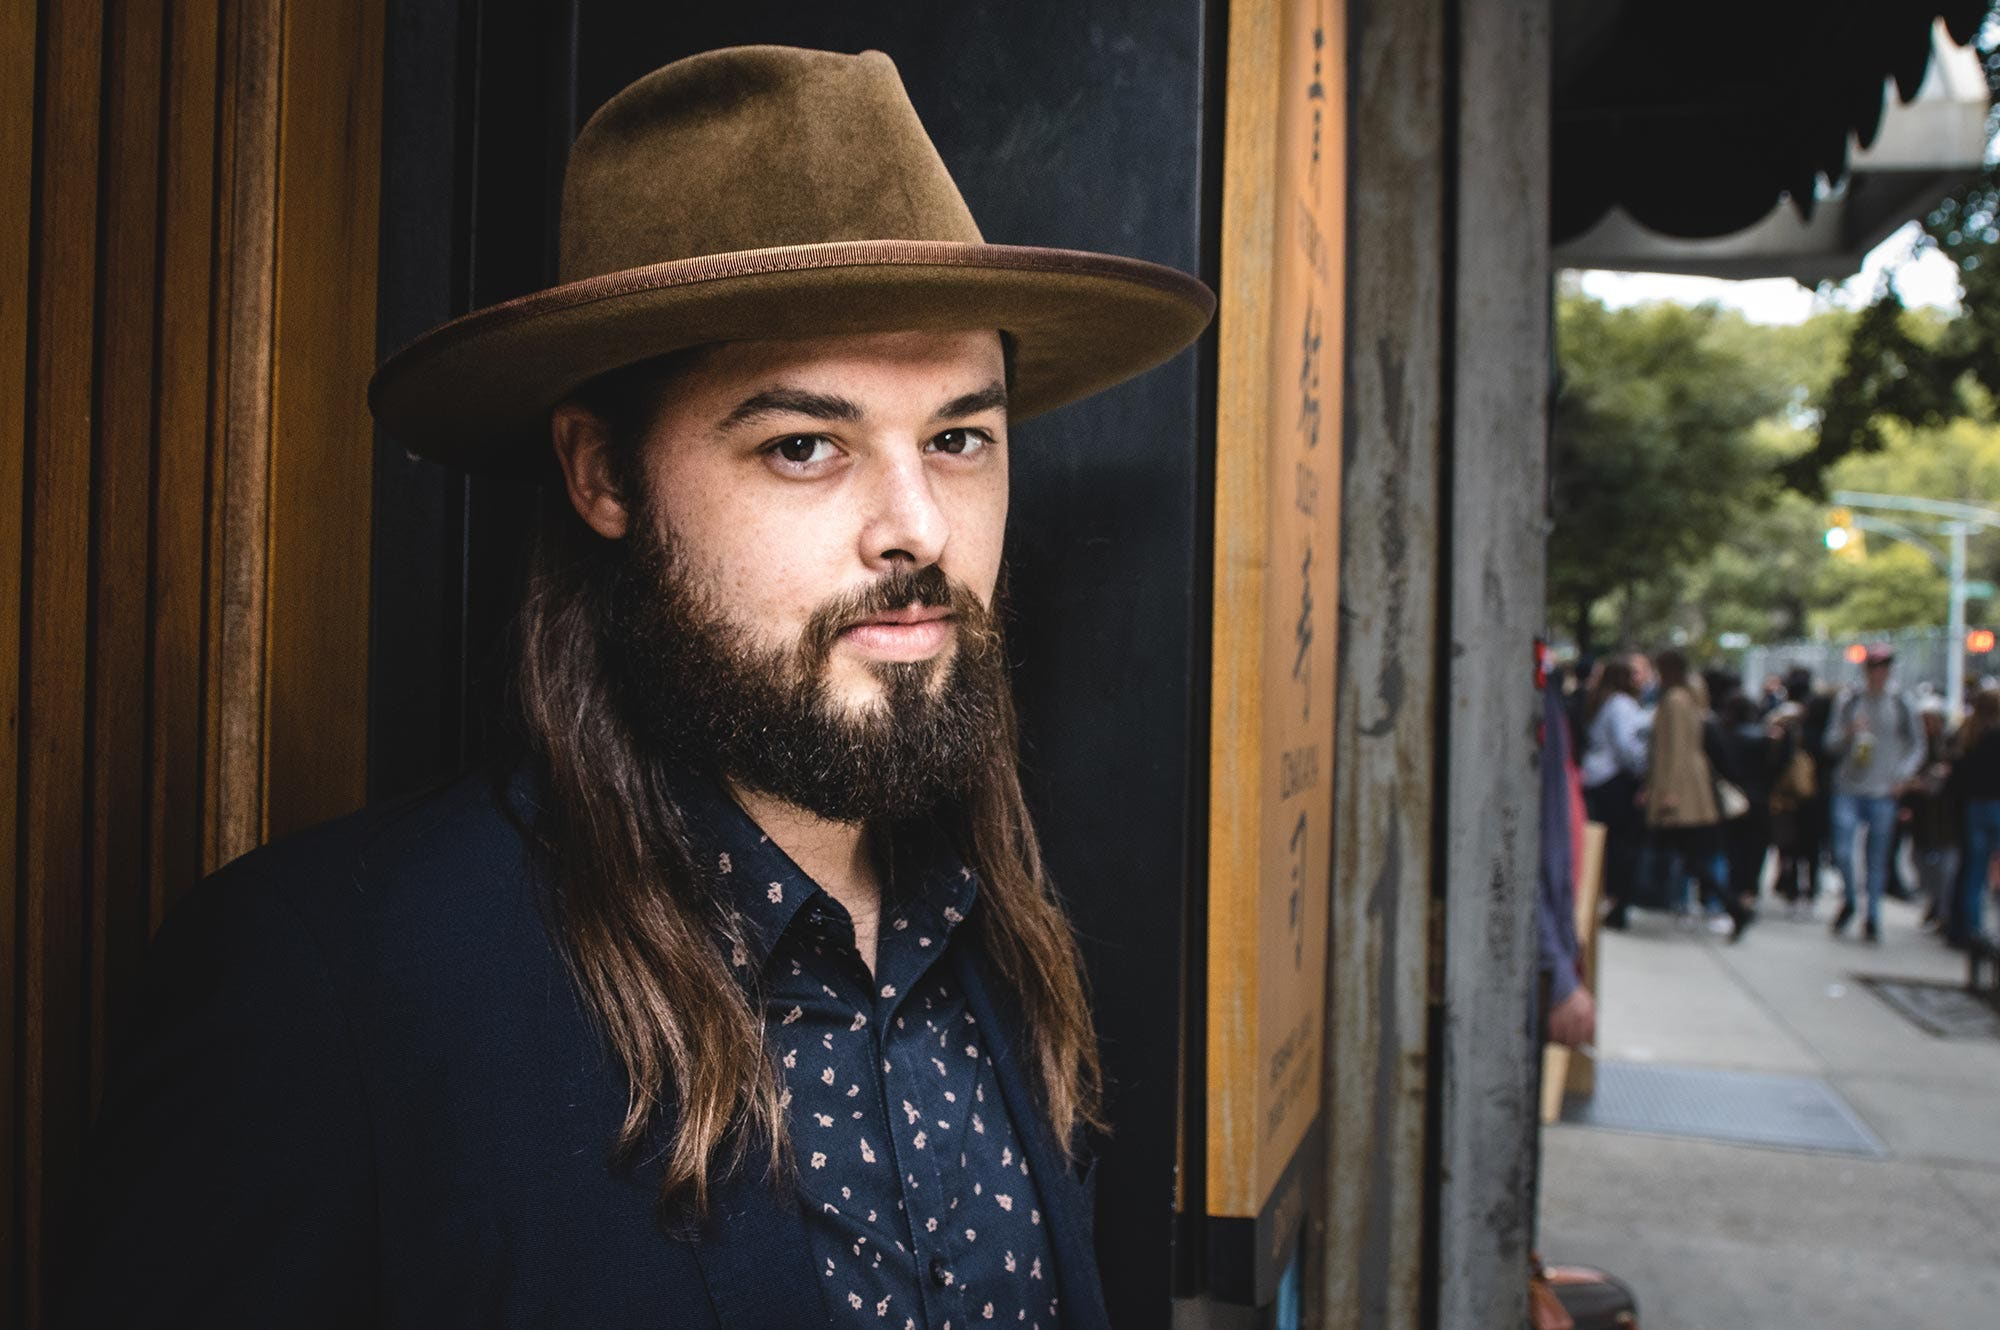 The cover for Caleb Caudle's album titled 'Better Hurry Up' depicting the artist seated in a chair while wearing a hat and sunglasses.